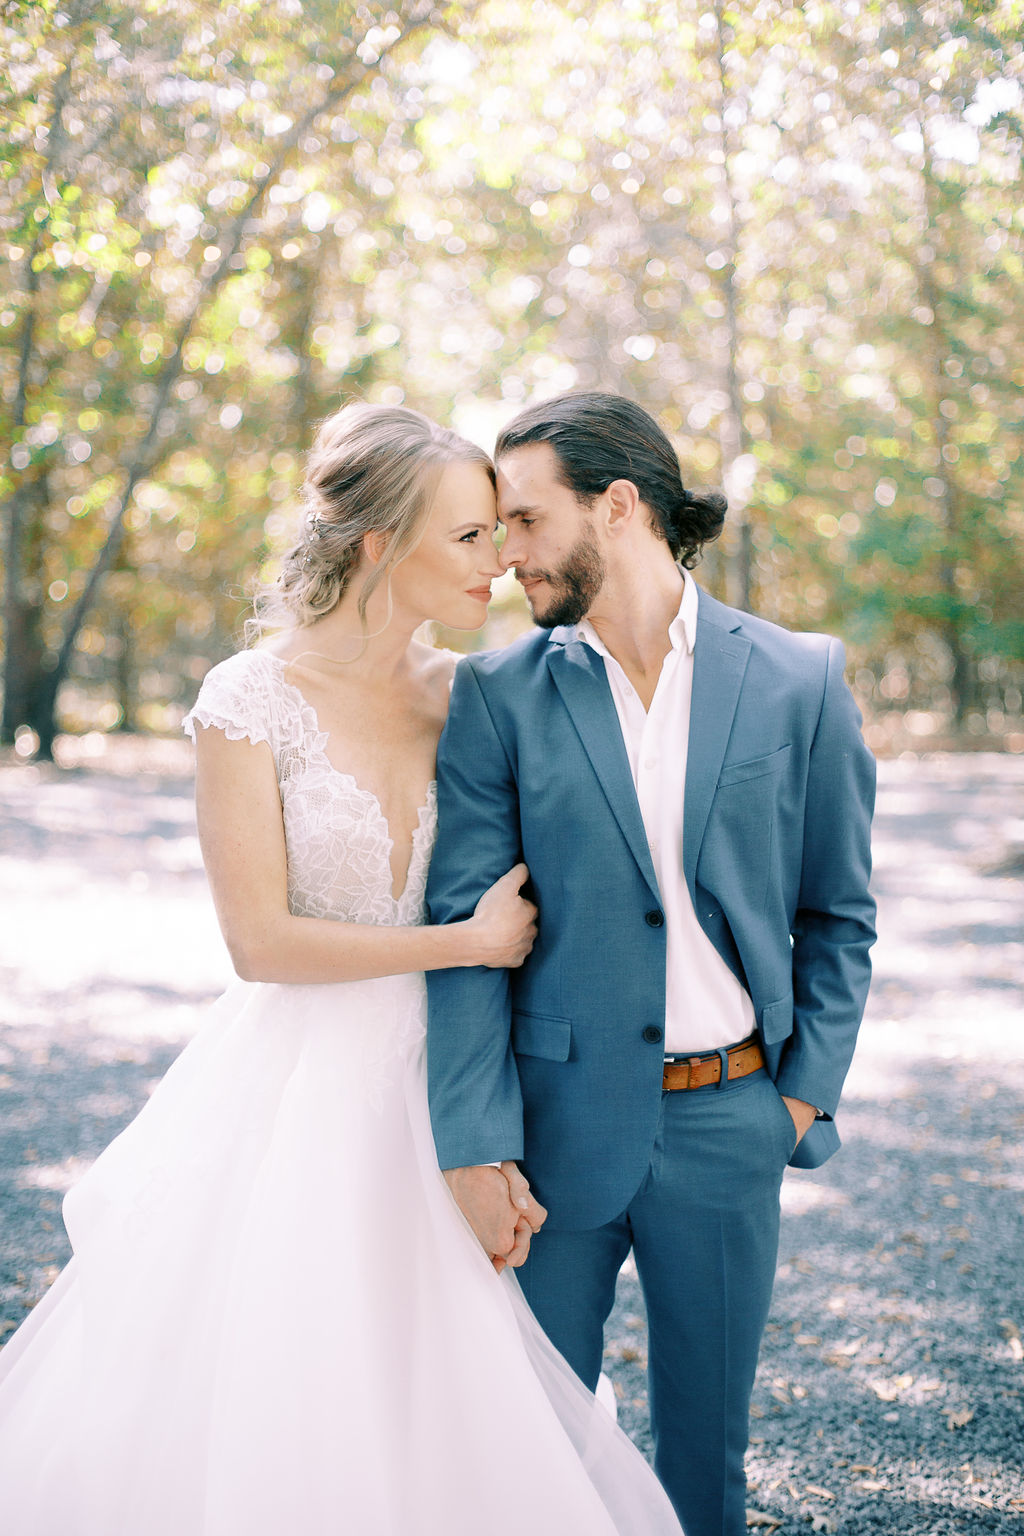 Lauren Marks Photography DFW: Ethereal Wedding Inspiration at The White Sparrow